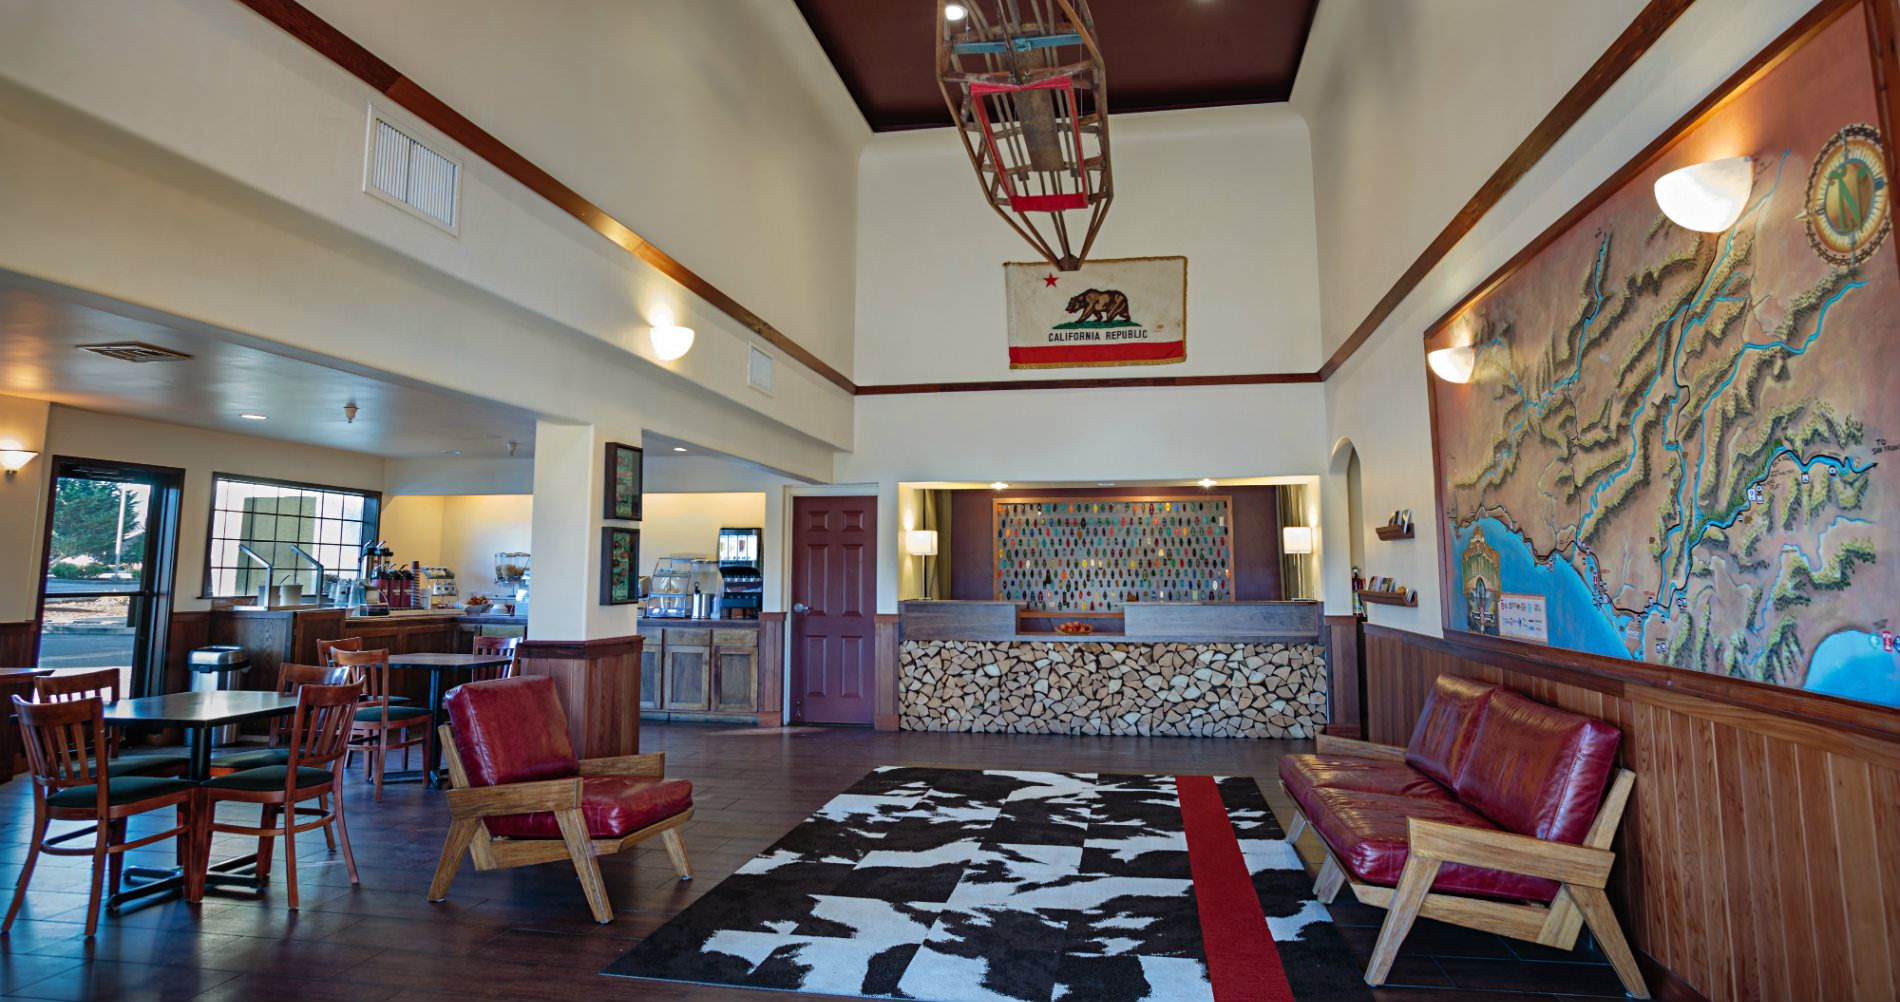 Picture of lobby.